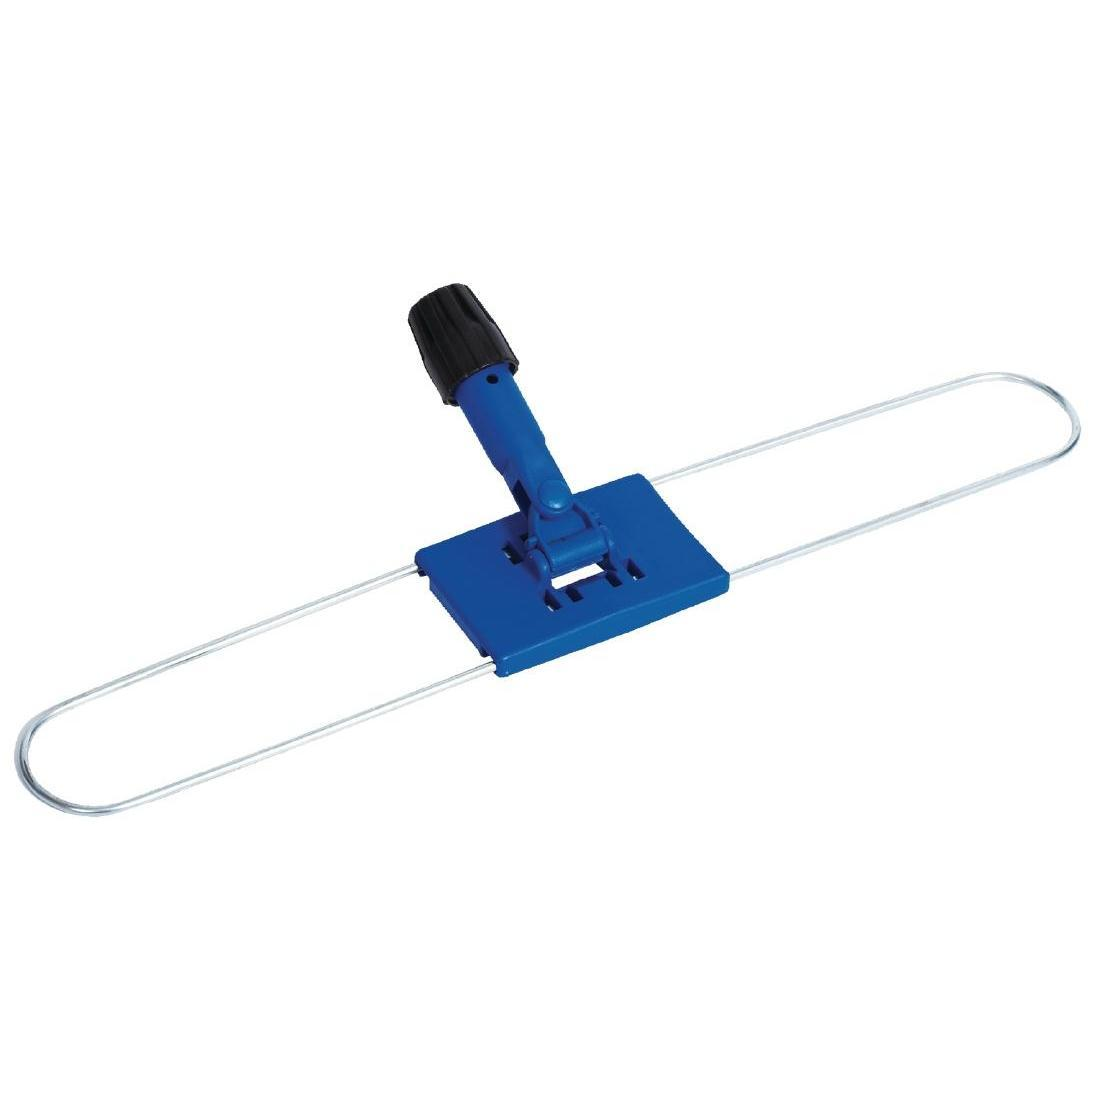 Jantex Sweeper Mop Frame 24in